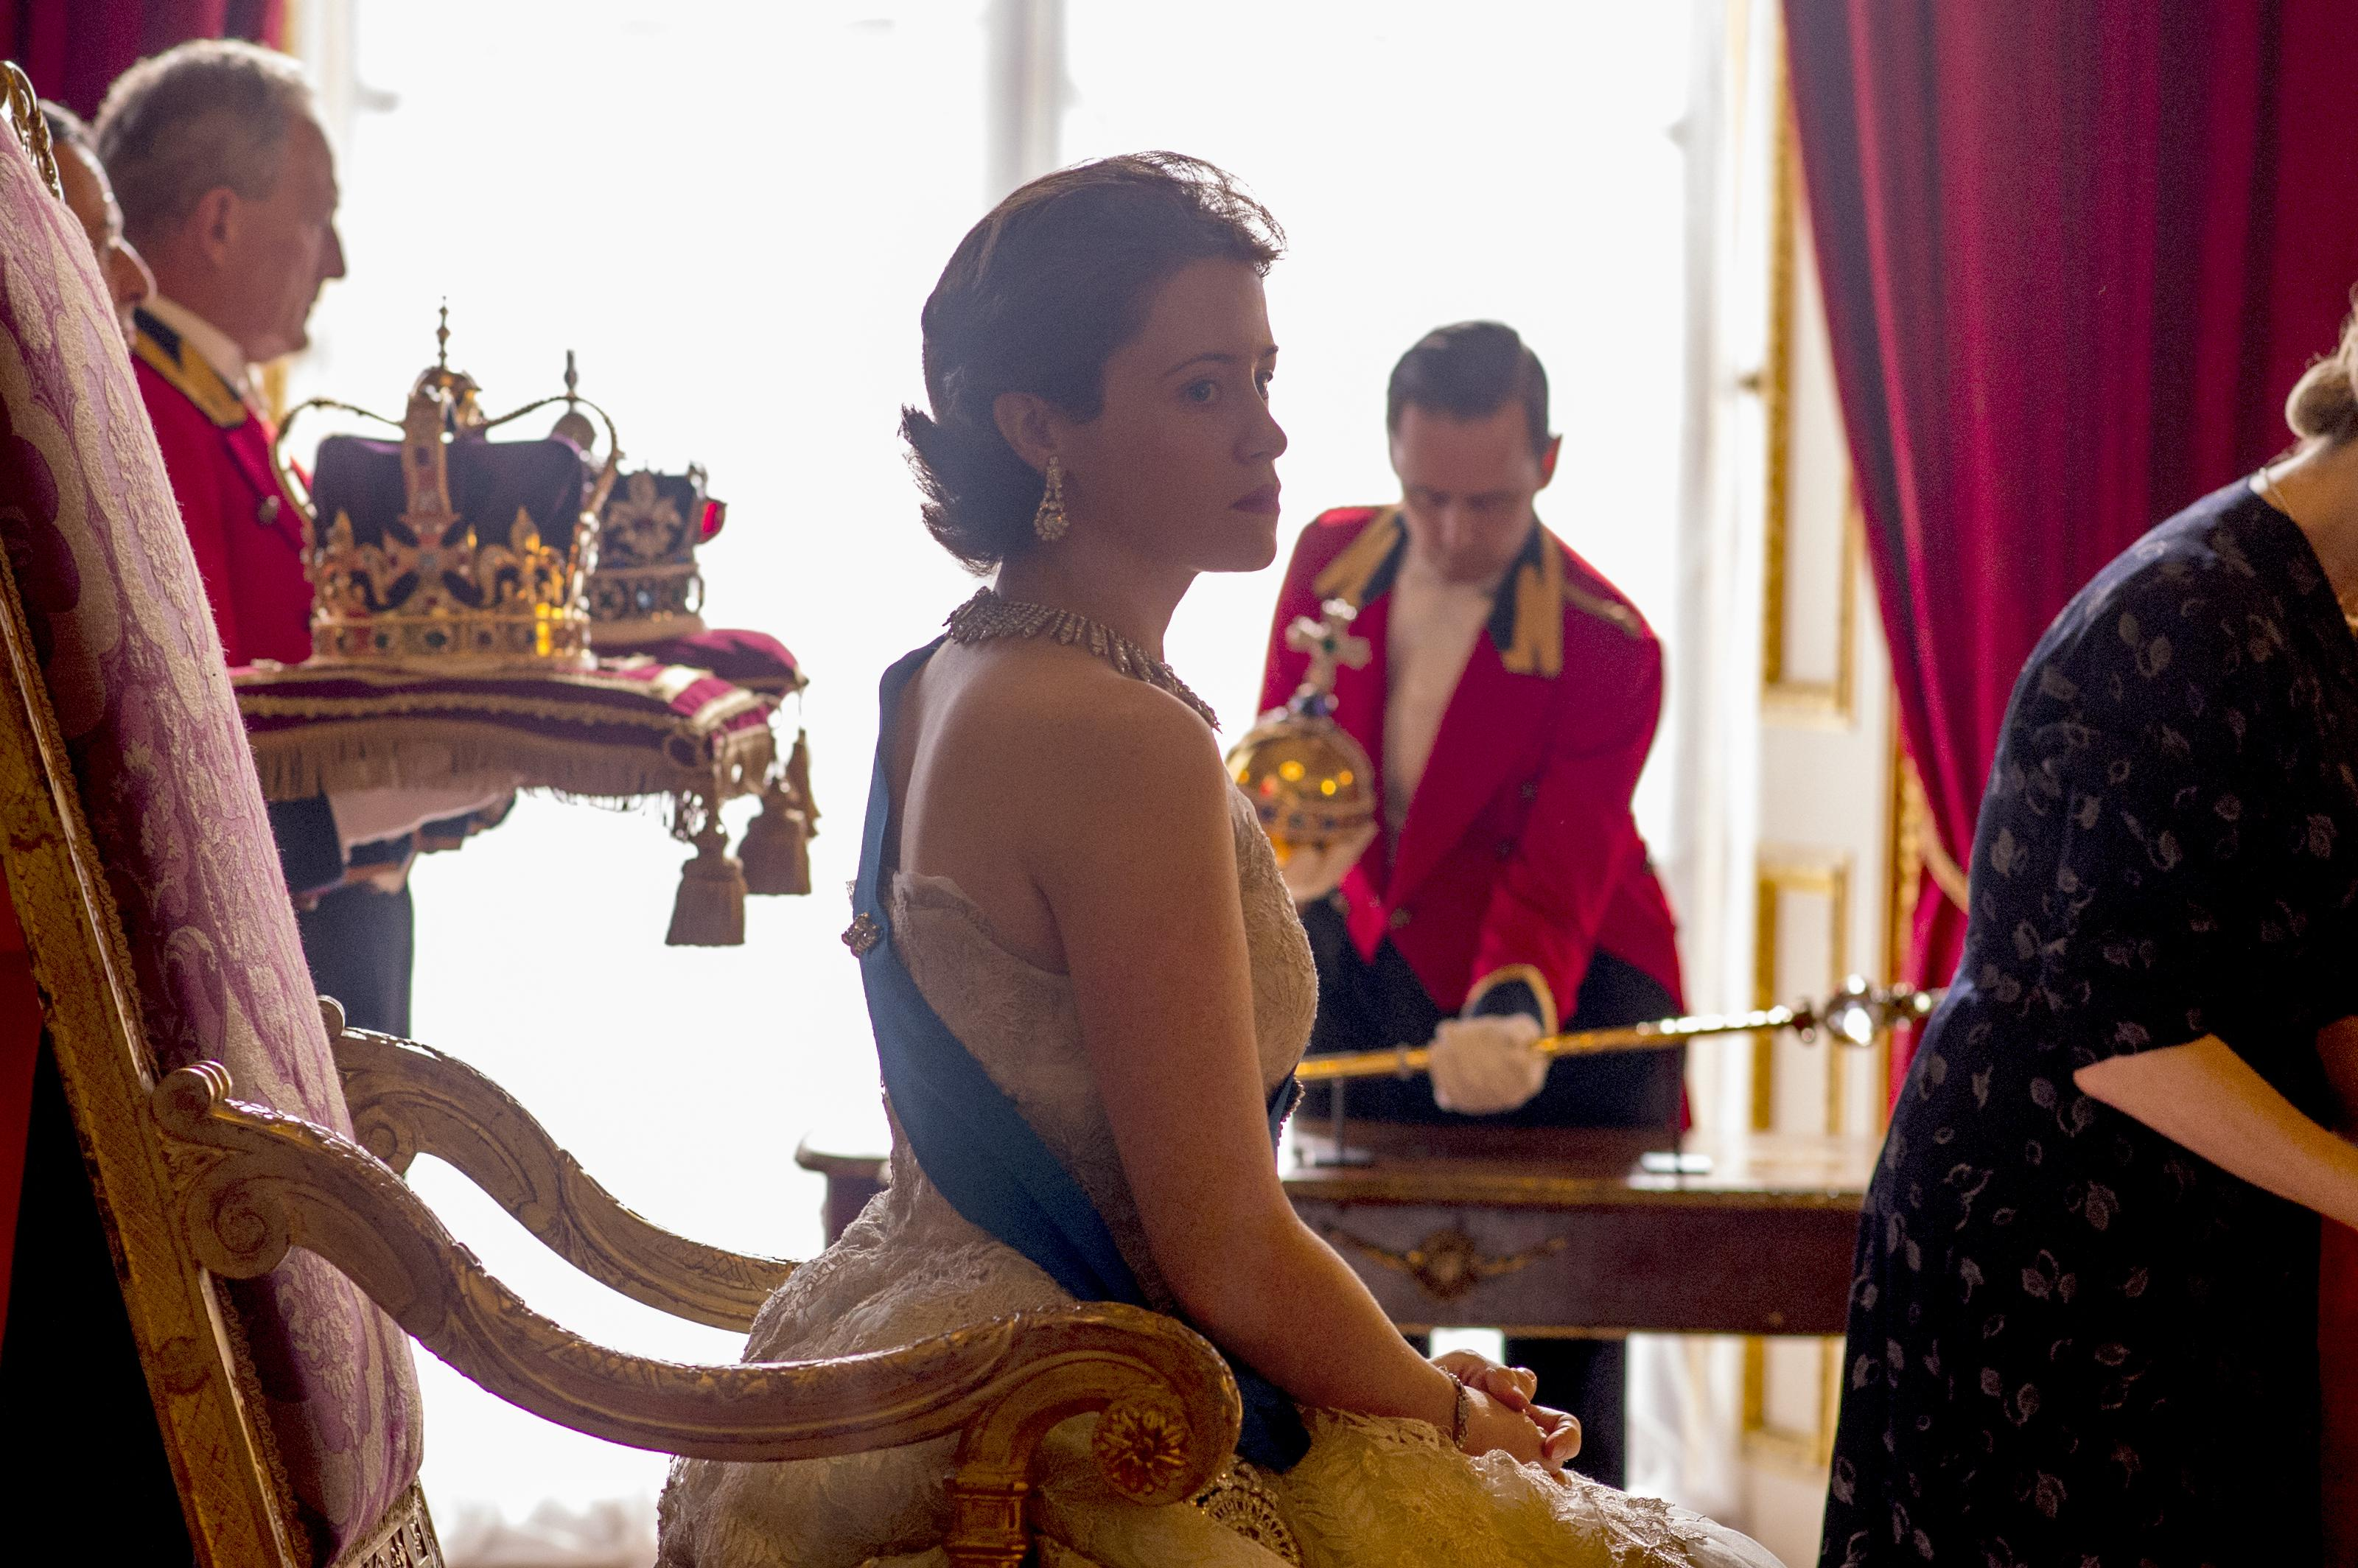 The Crown Season 2 release date